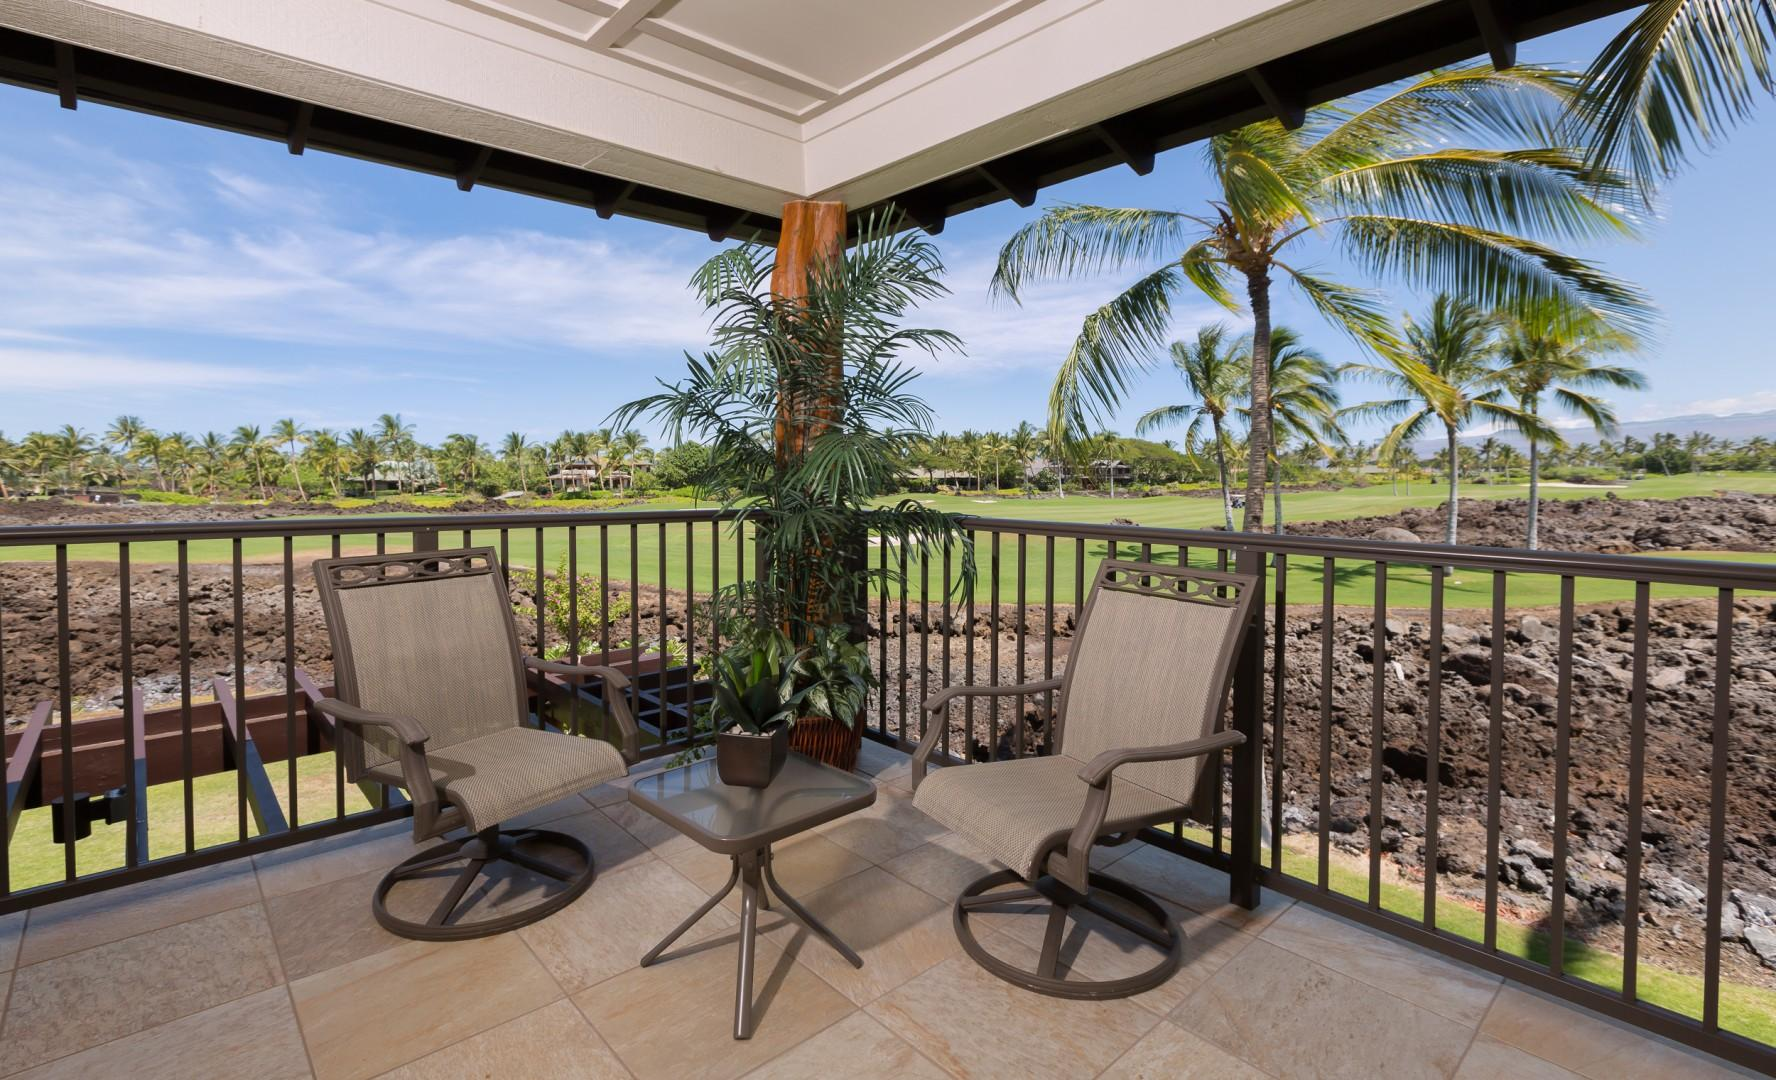 Lounge on the lanai